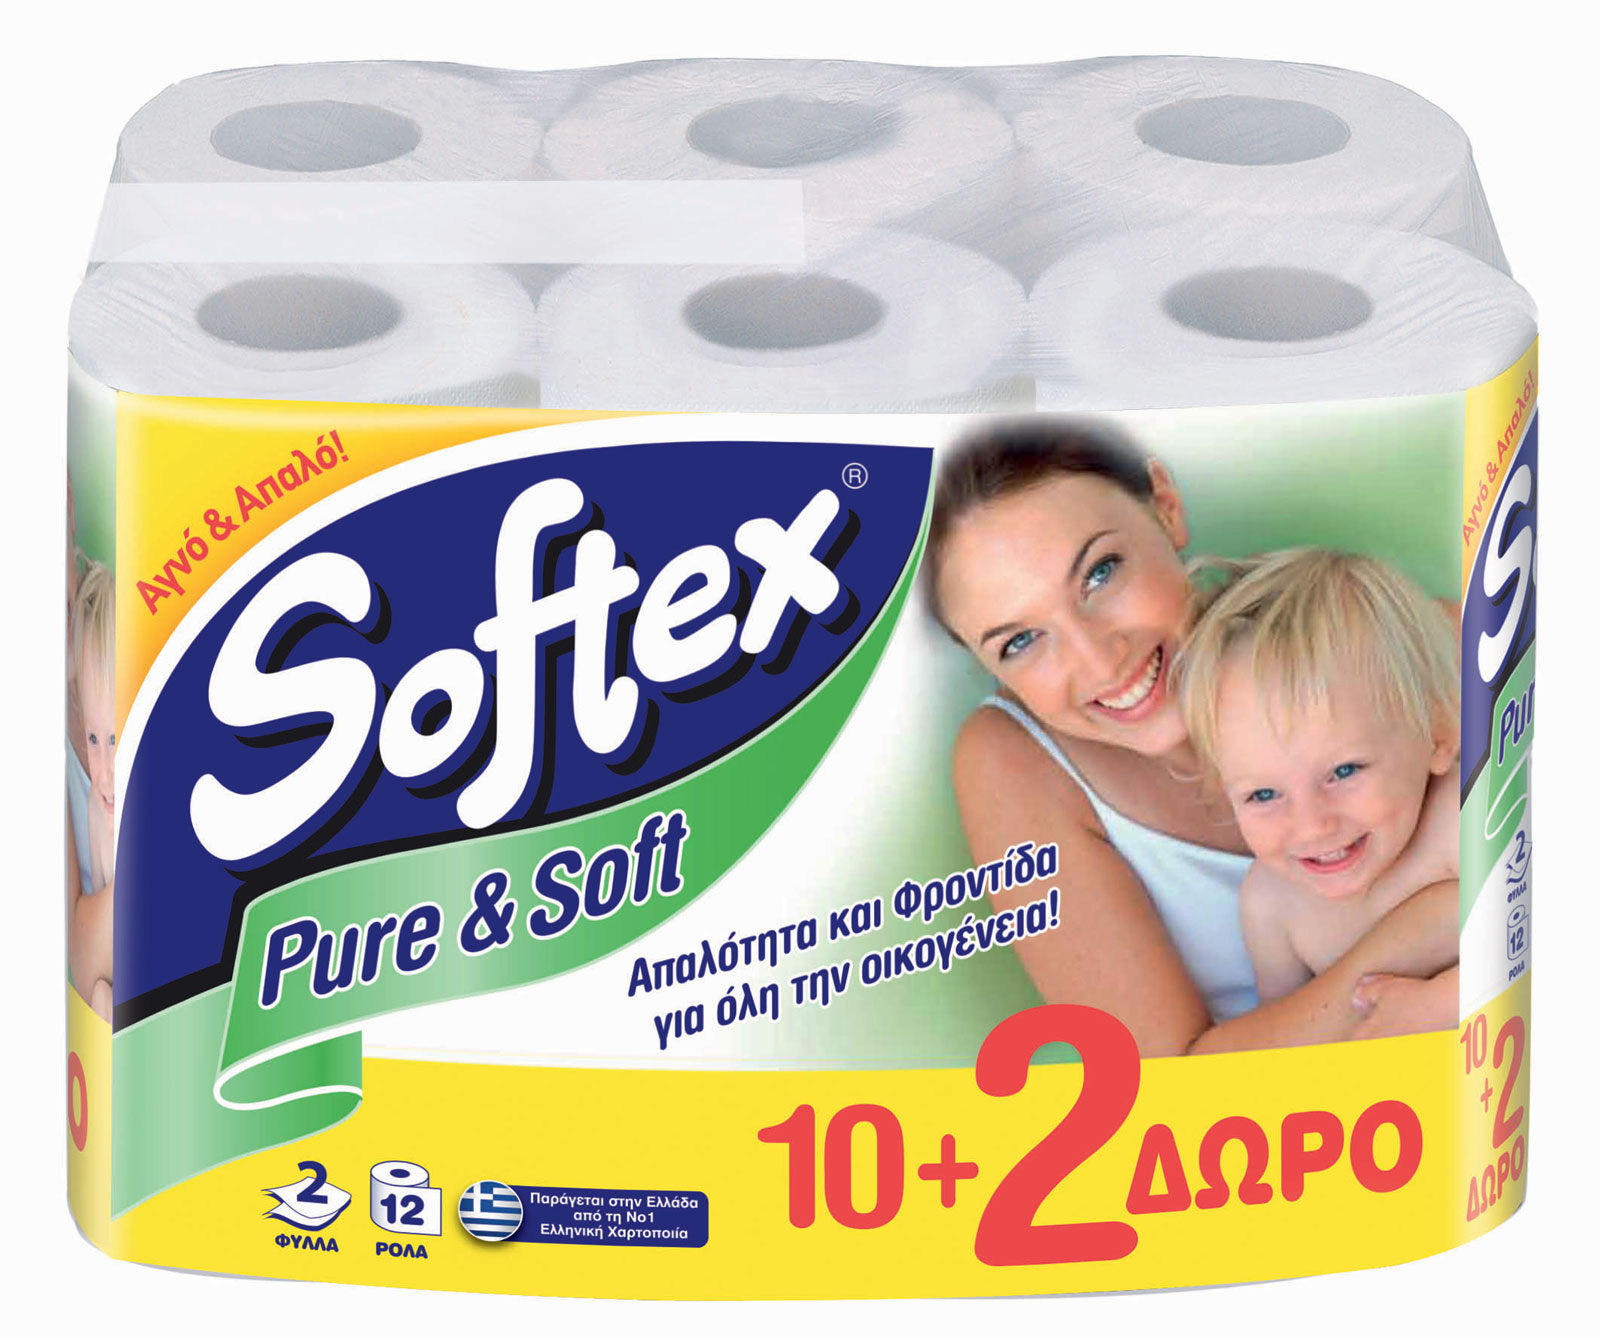 SOFTEX-PURE-&-SOFT-12(10+2)